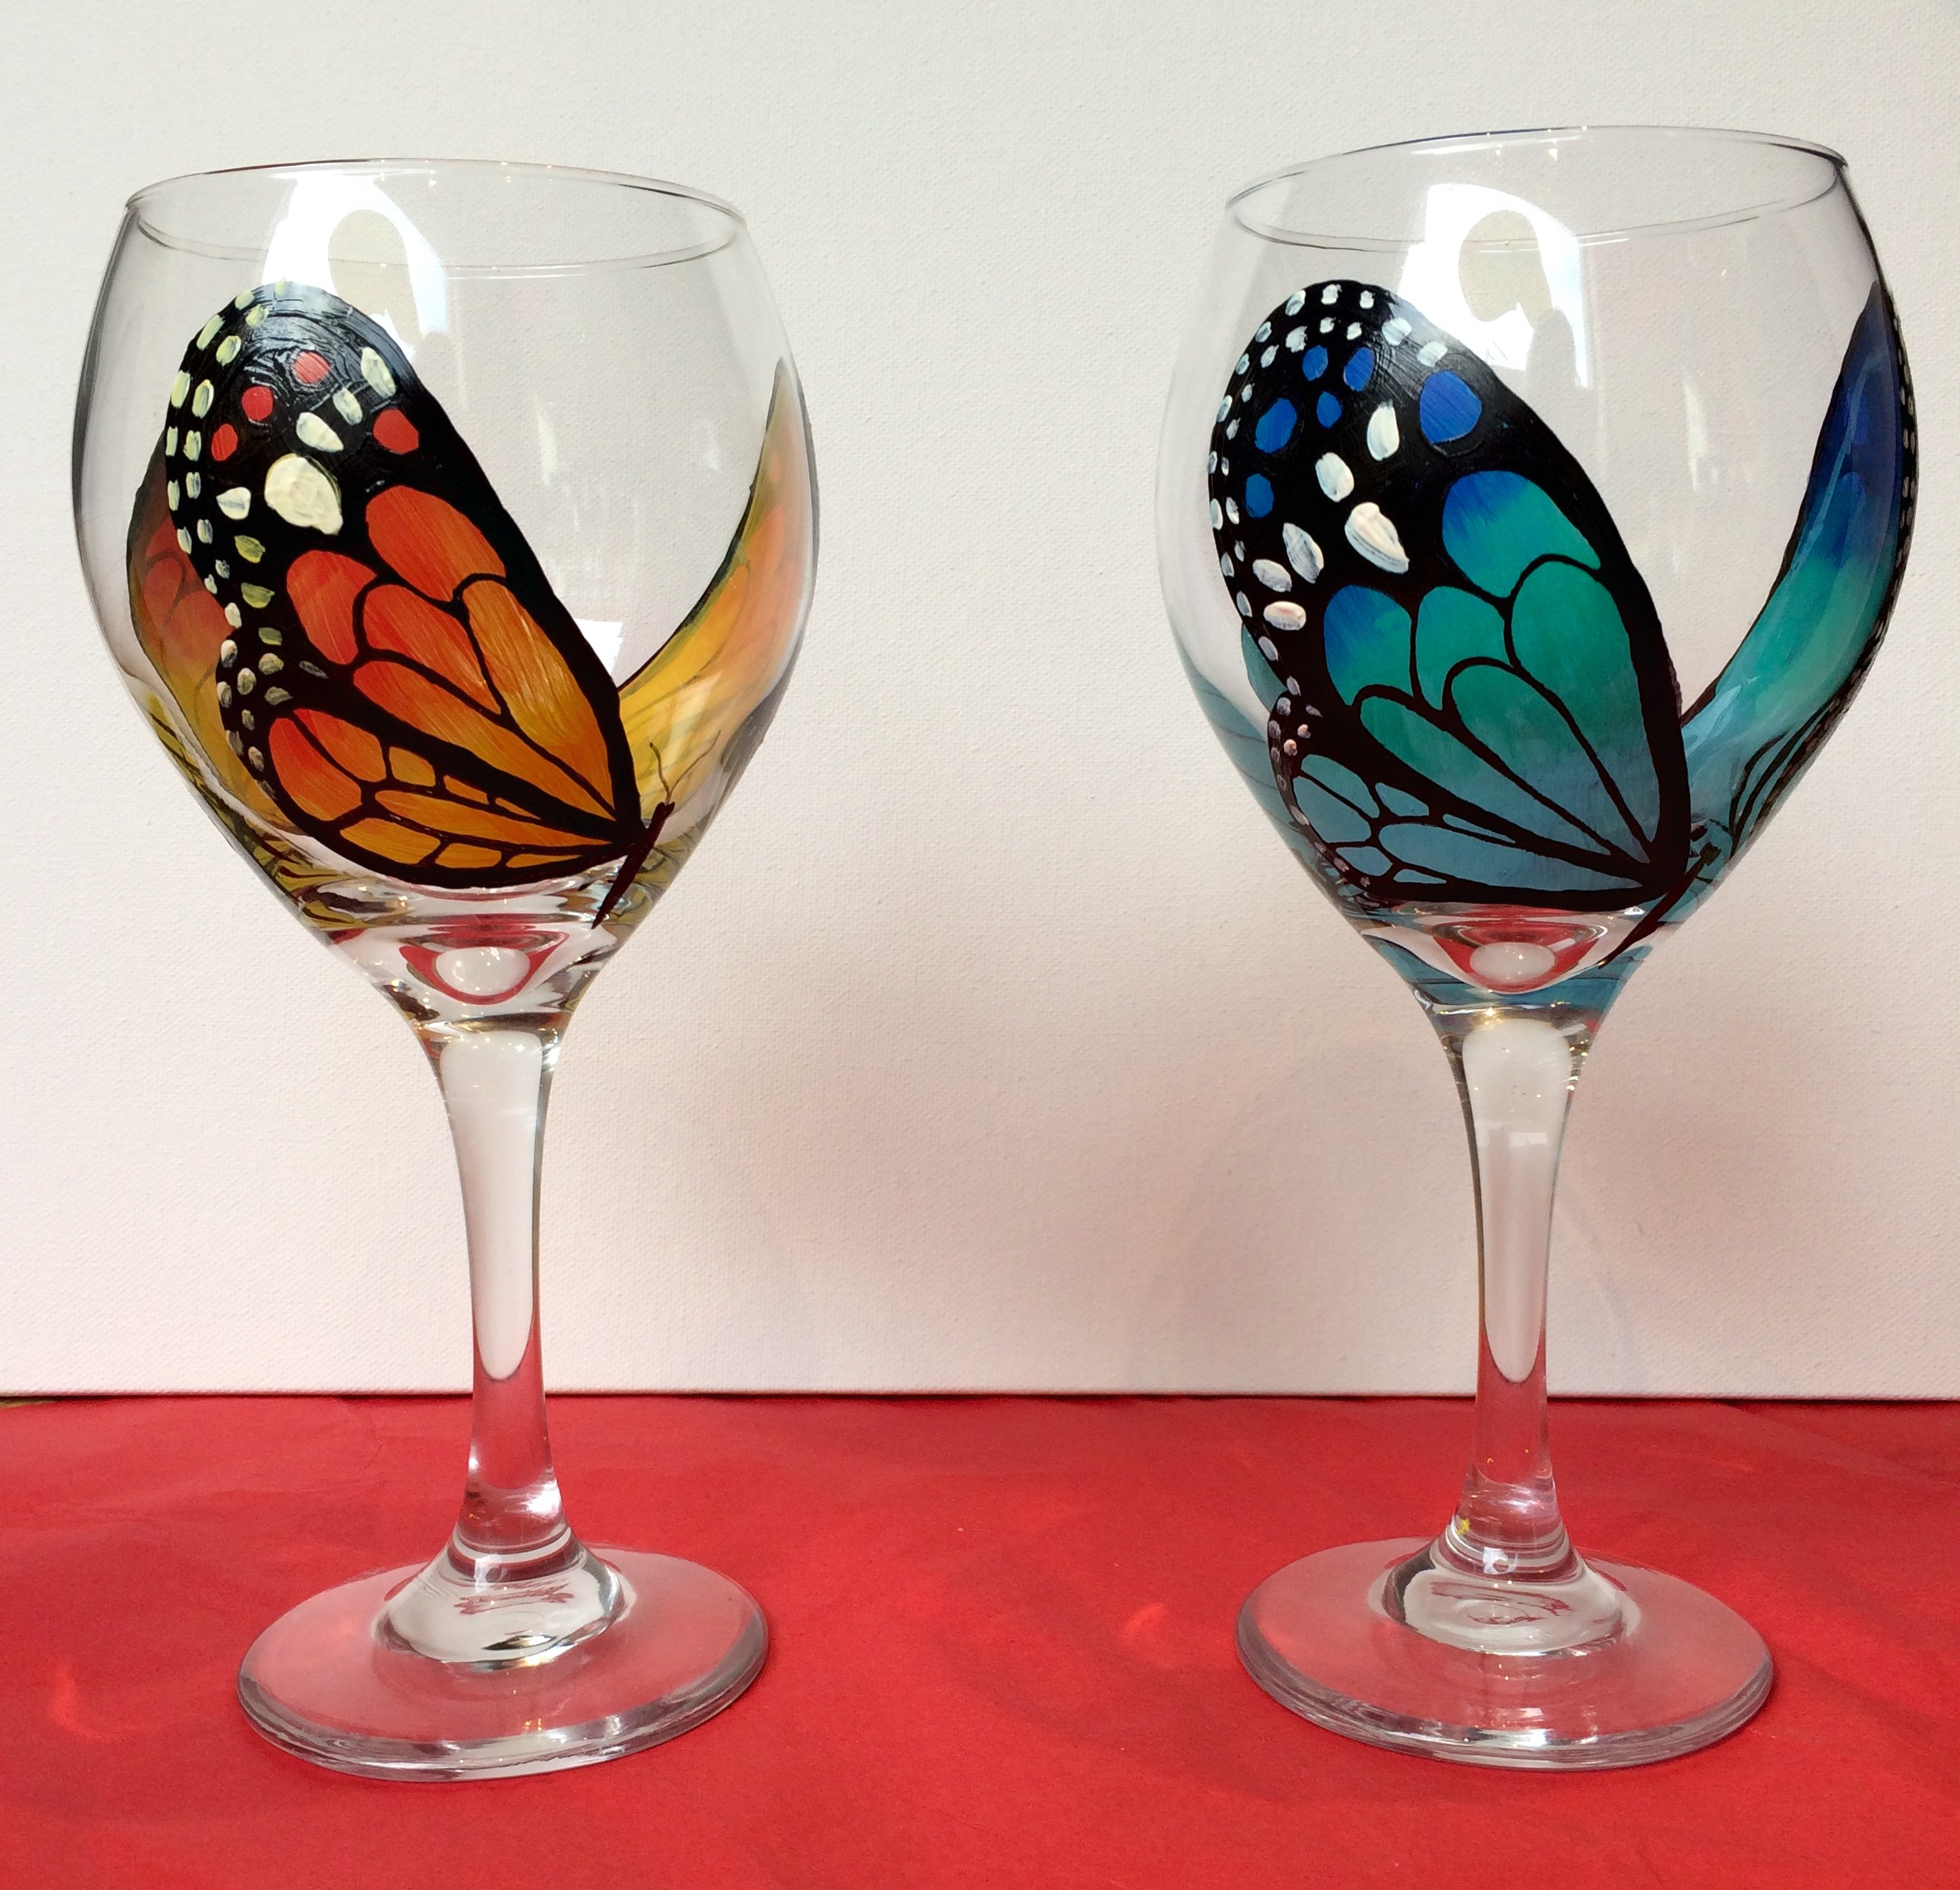 Butterfly Wine Glasses Paint Fun Studio: images of painted wine glasses